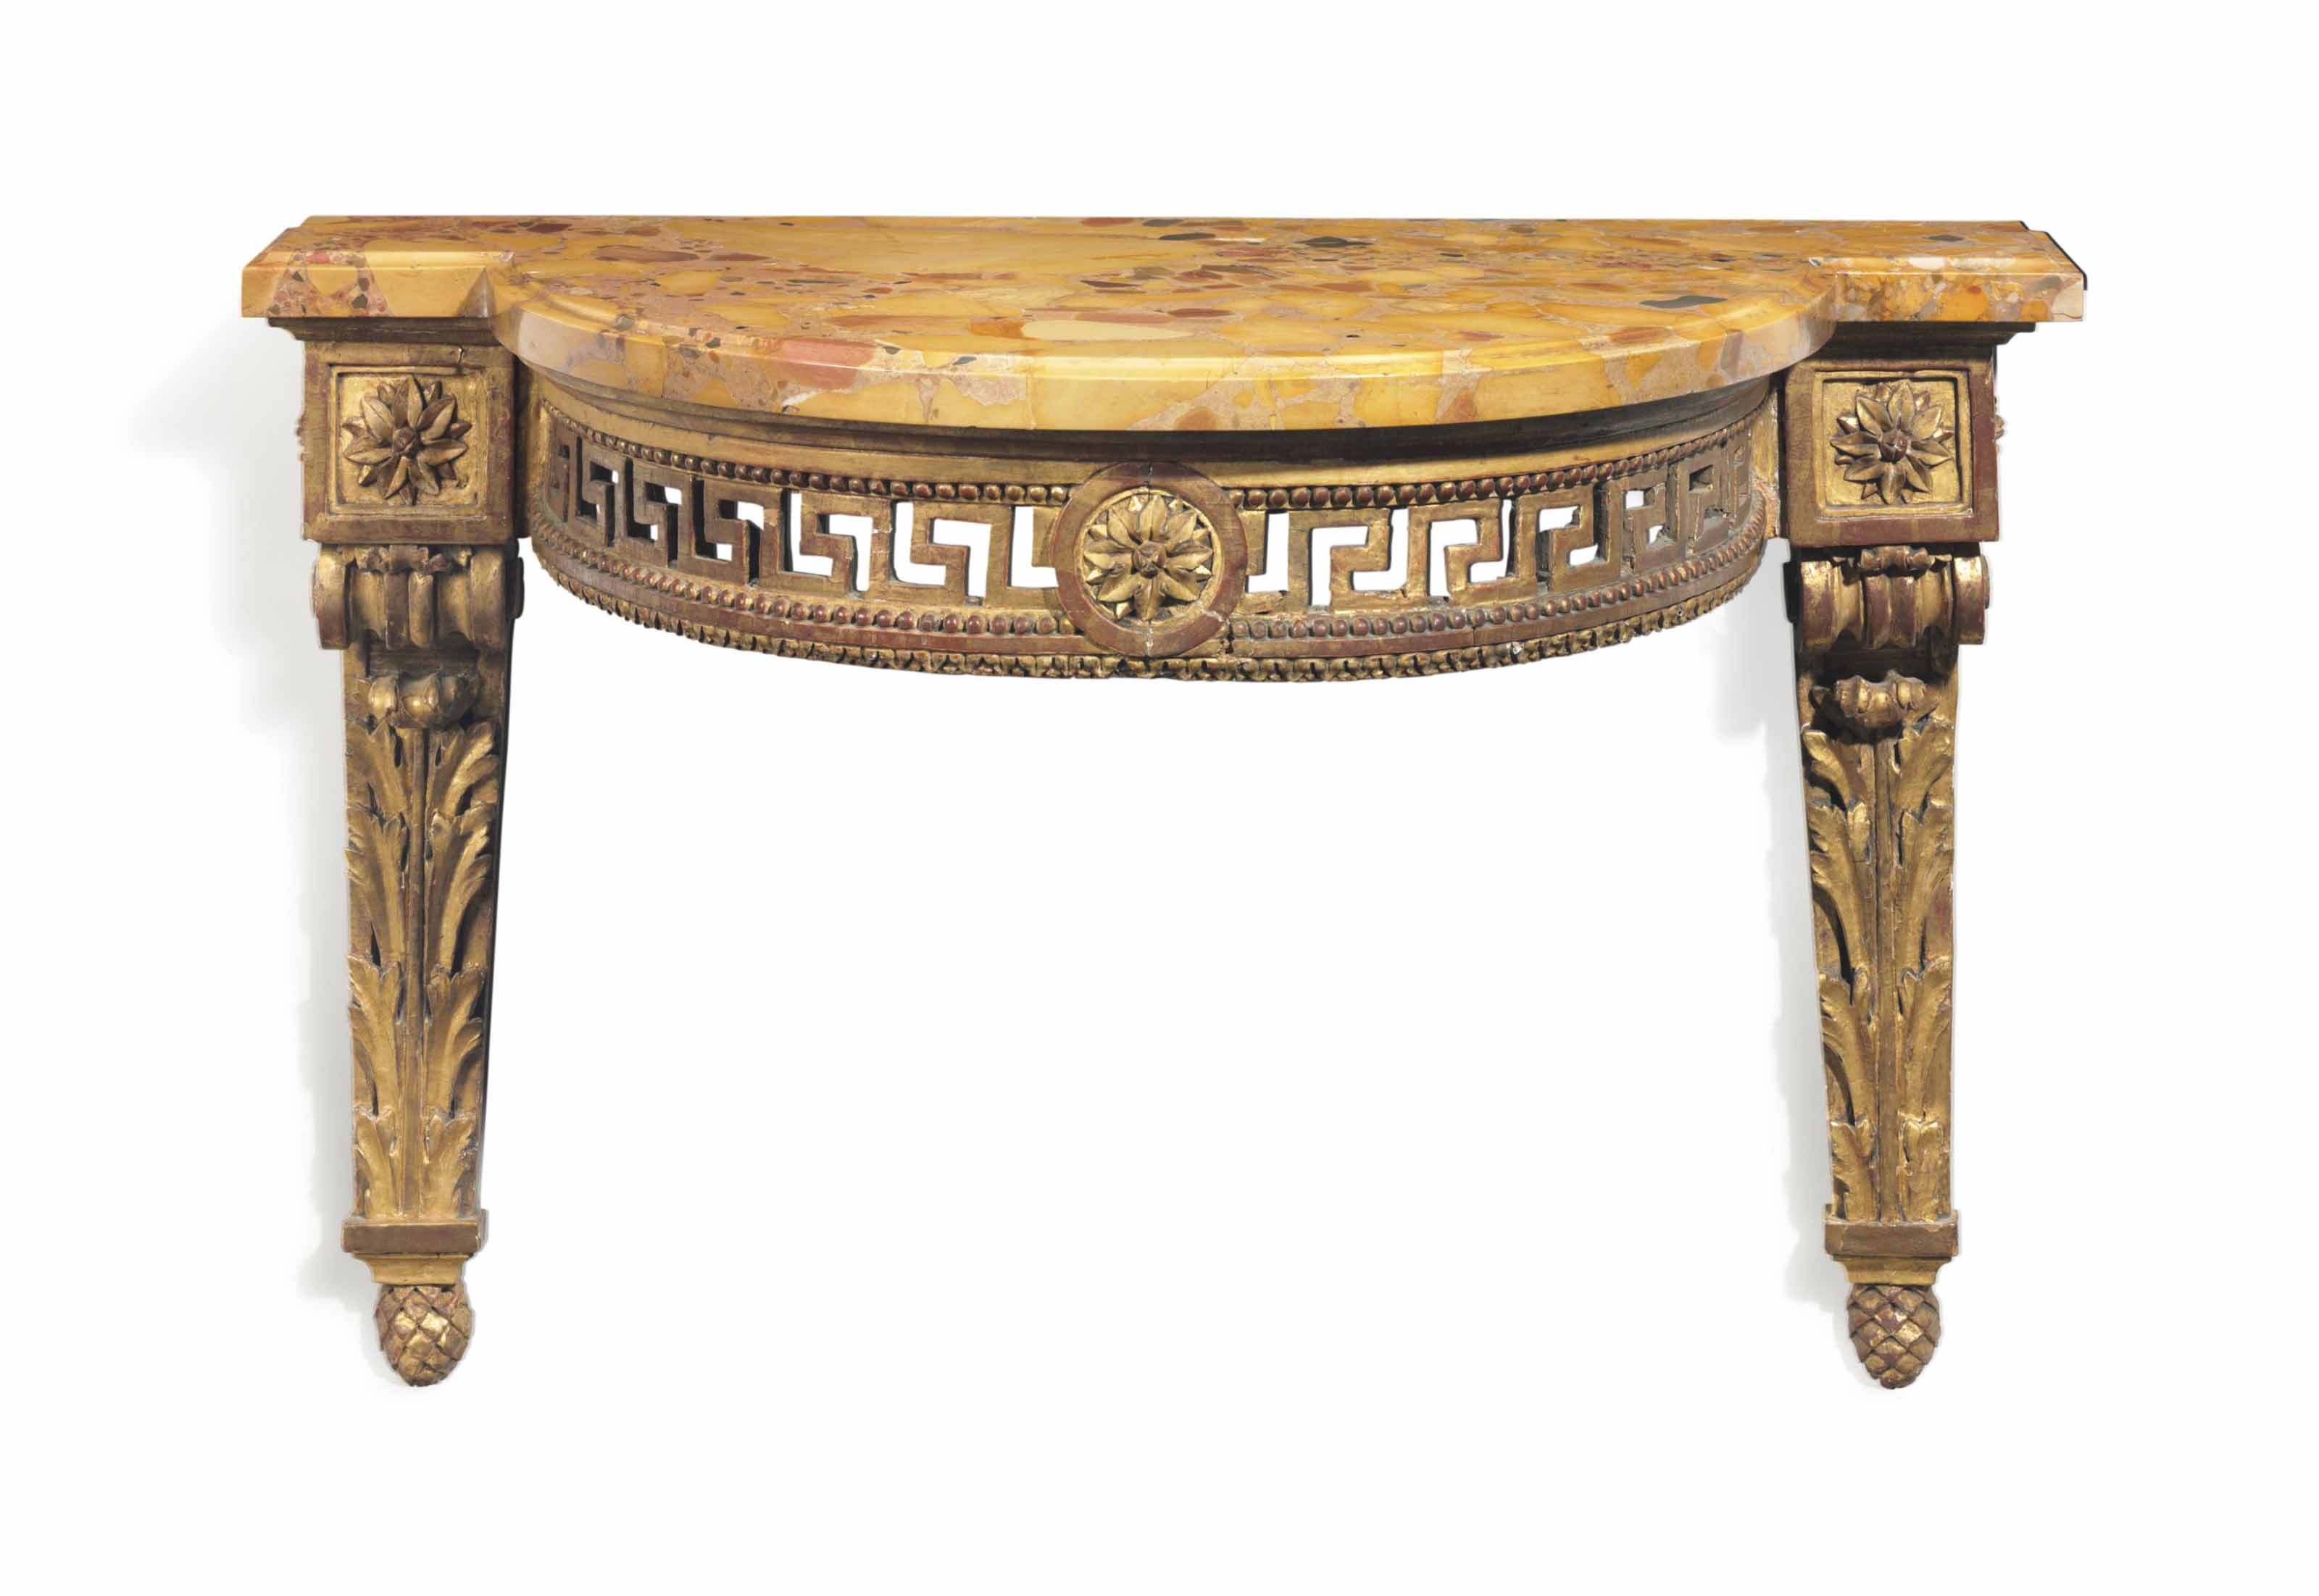 A LOUIS XVI GILTWOOD CONSOLE TABLE